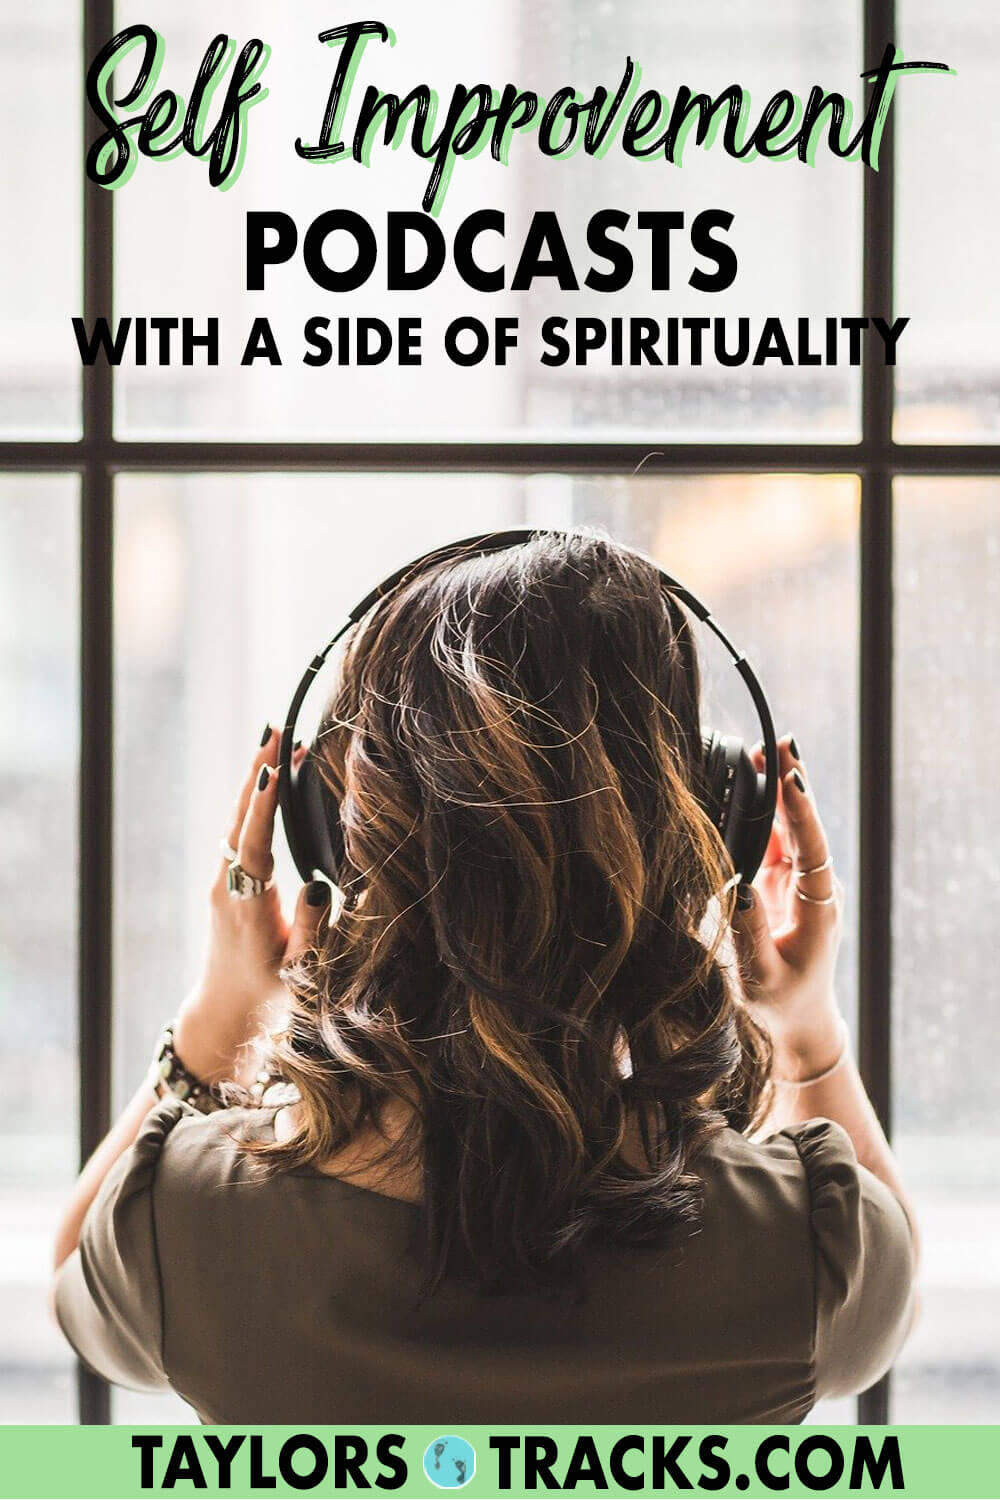 Self improvement podcasts don't have to be all about doing. These podcasts for women combine spirituality with personal development so that you can find flow, ease and letting go as easily as you can do, accomplish and thrive. Click to find your next inspirational self growth podcast!